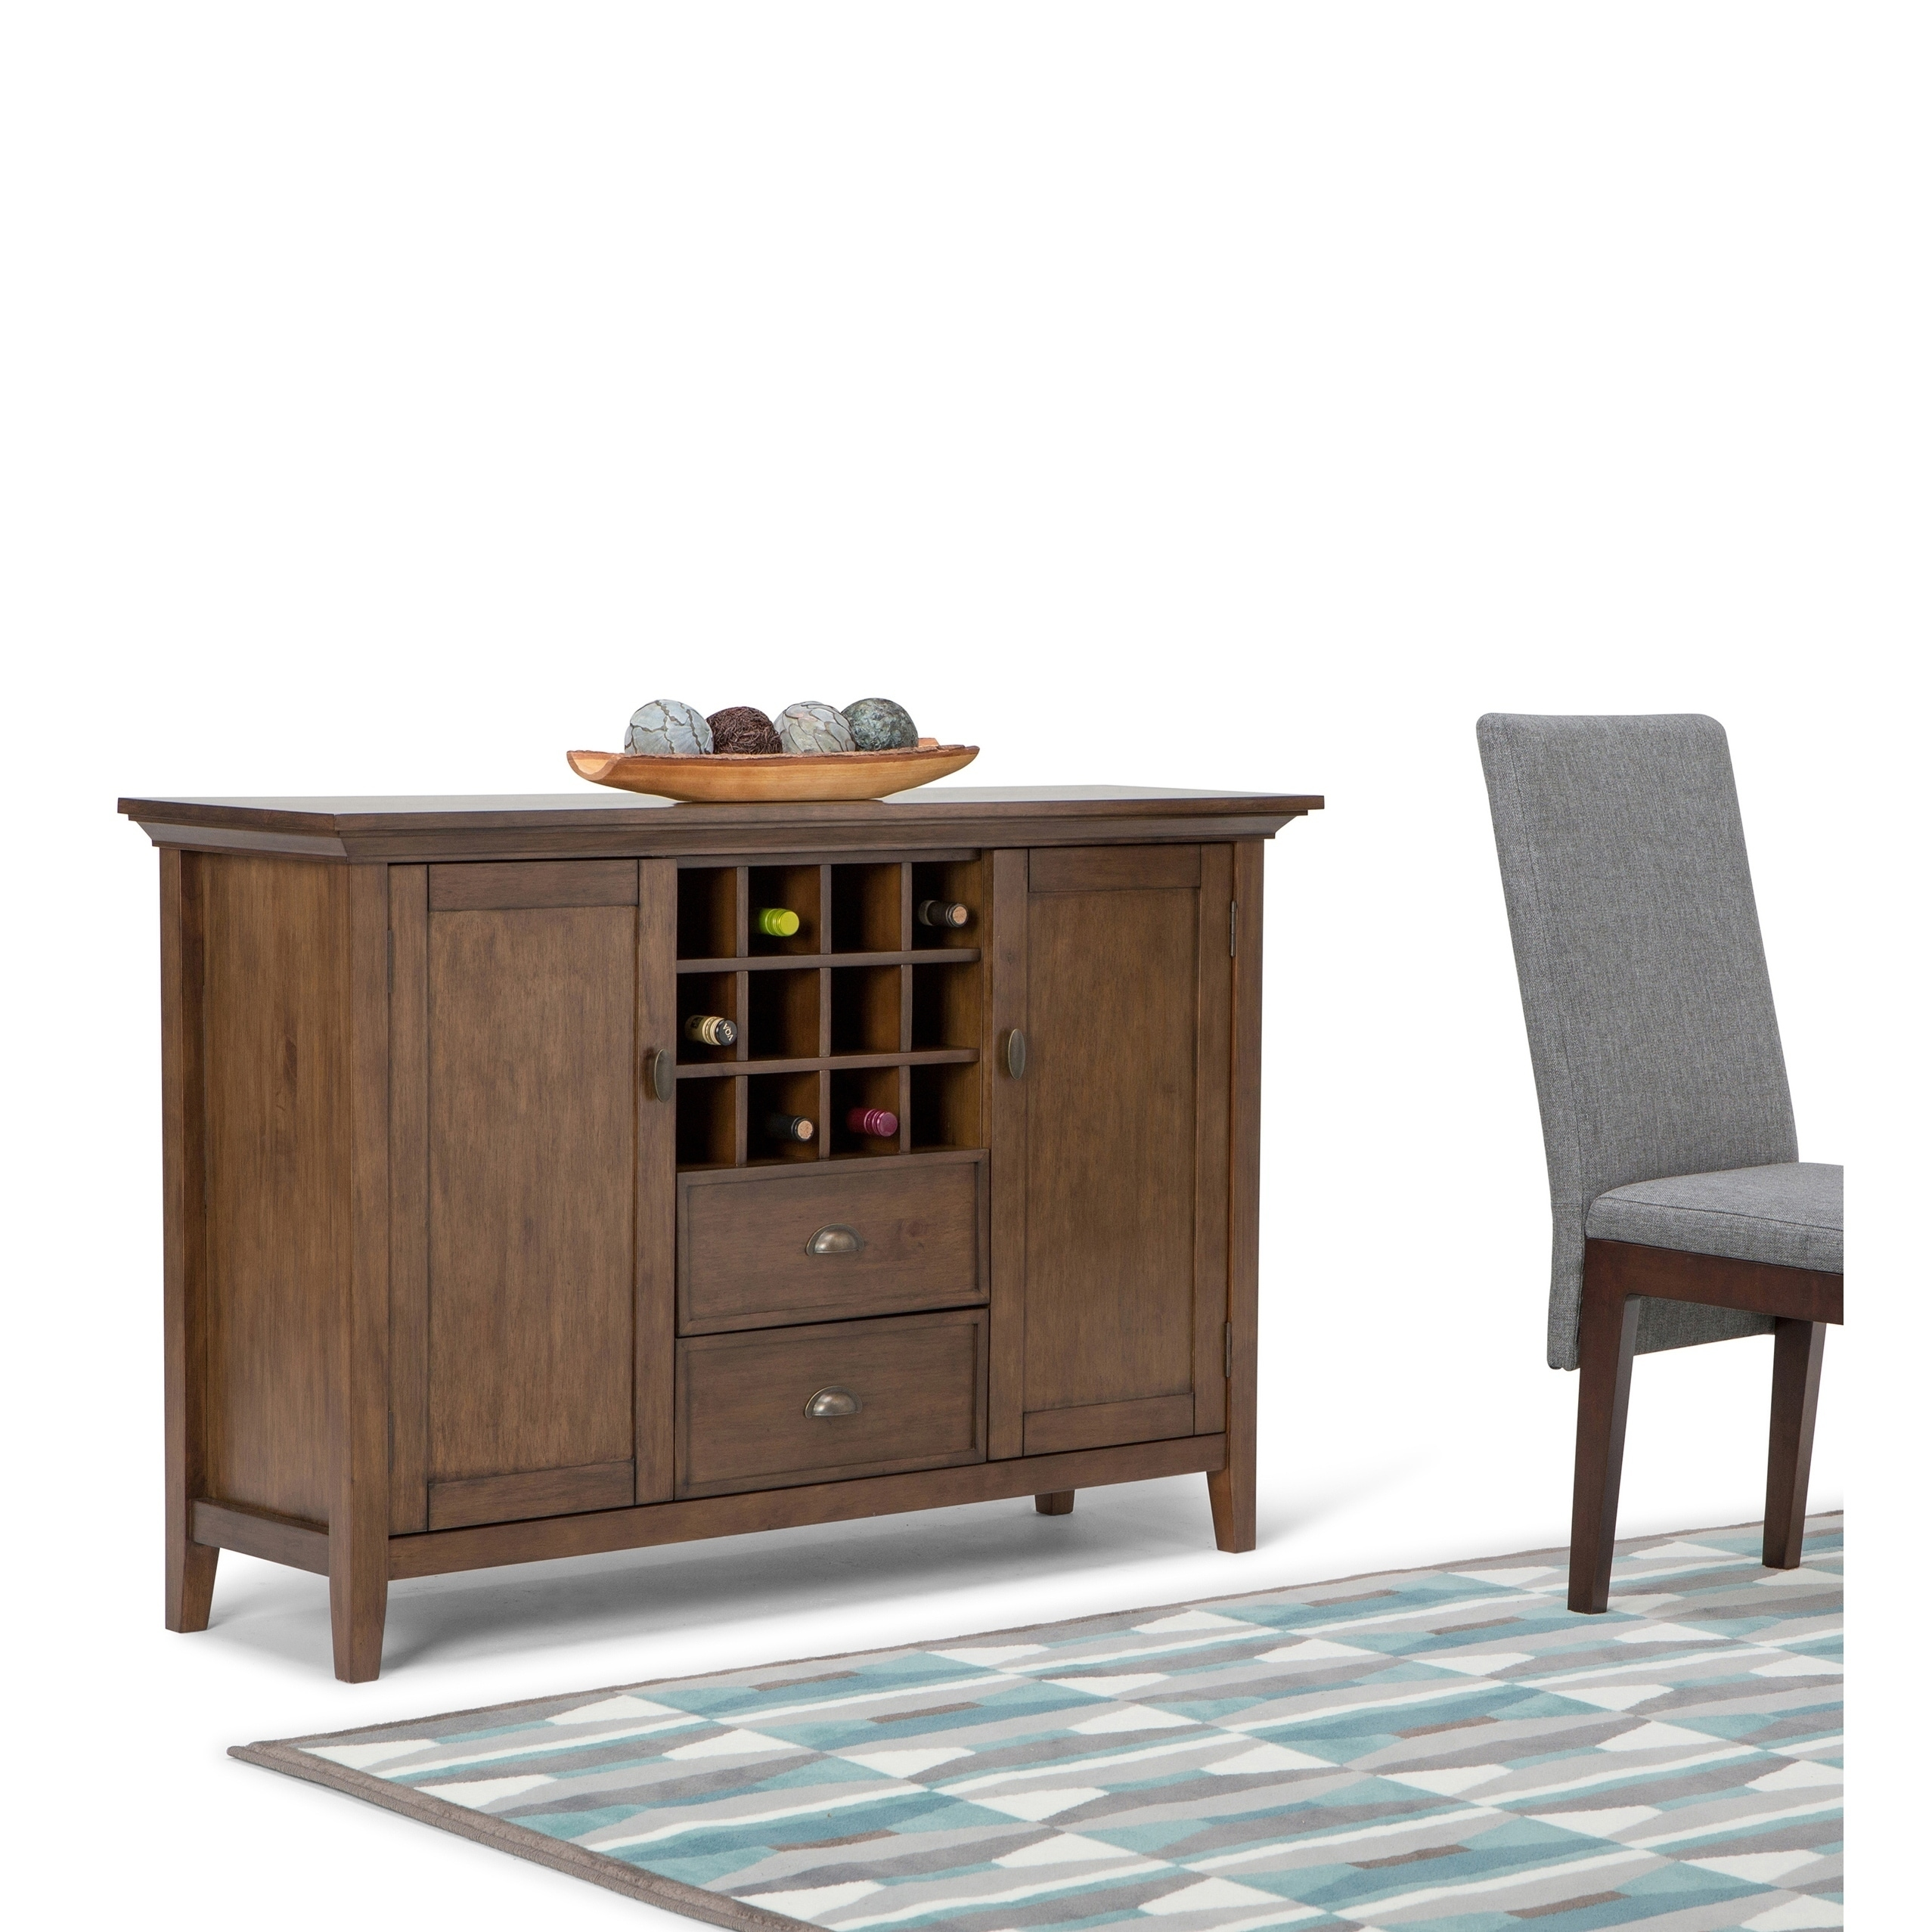 buy online 9a4c6 2f8e8 WYNDENHALL Mansfield Solid Wood 54 inch Wide Rustic Sideboard Buffet  Credenza and Winerack in Rustic Natural Aged Brown